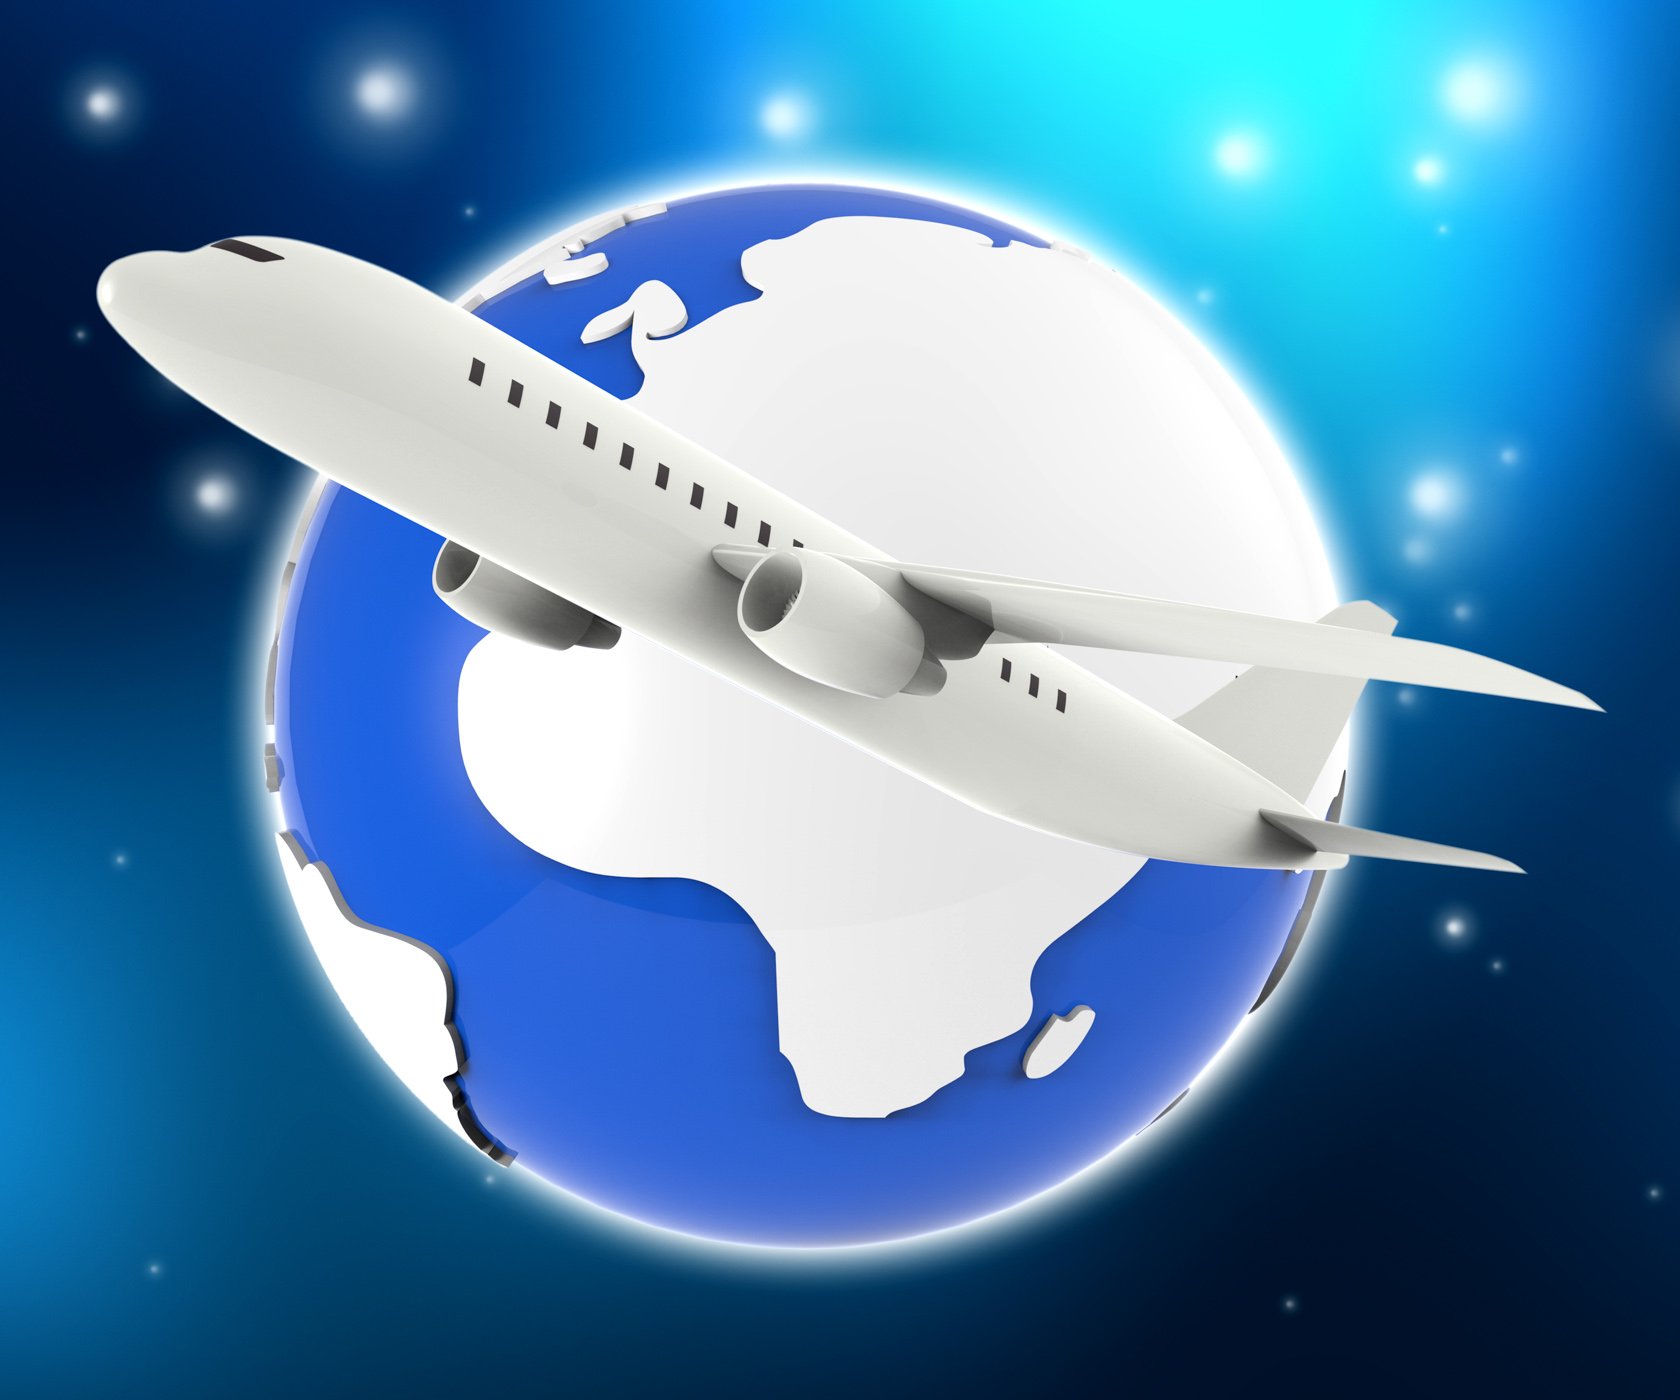 World plane represents travel guide and air photo